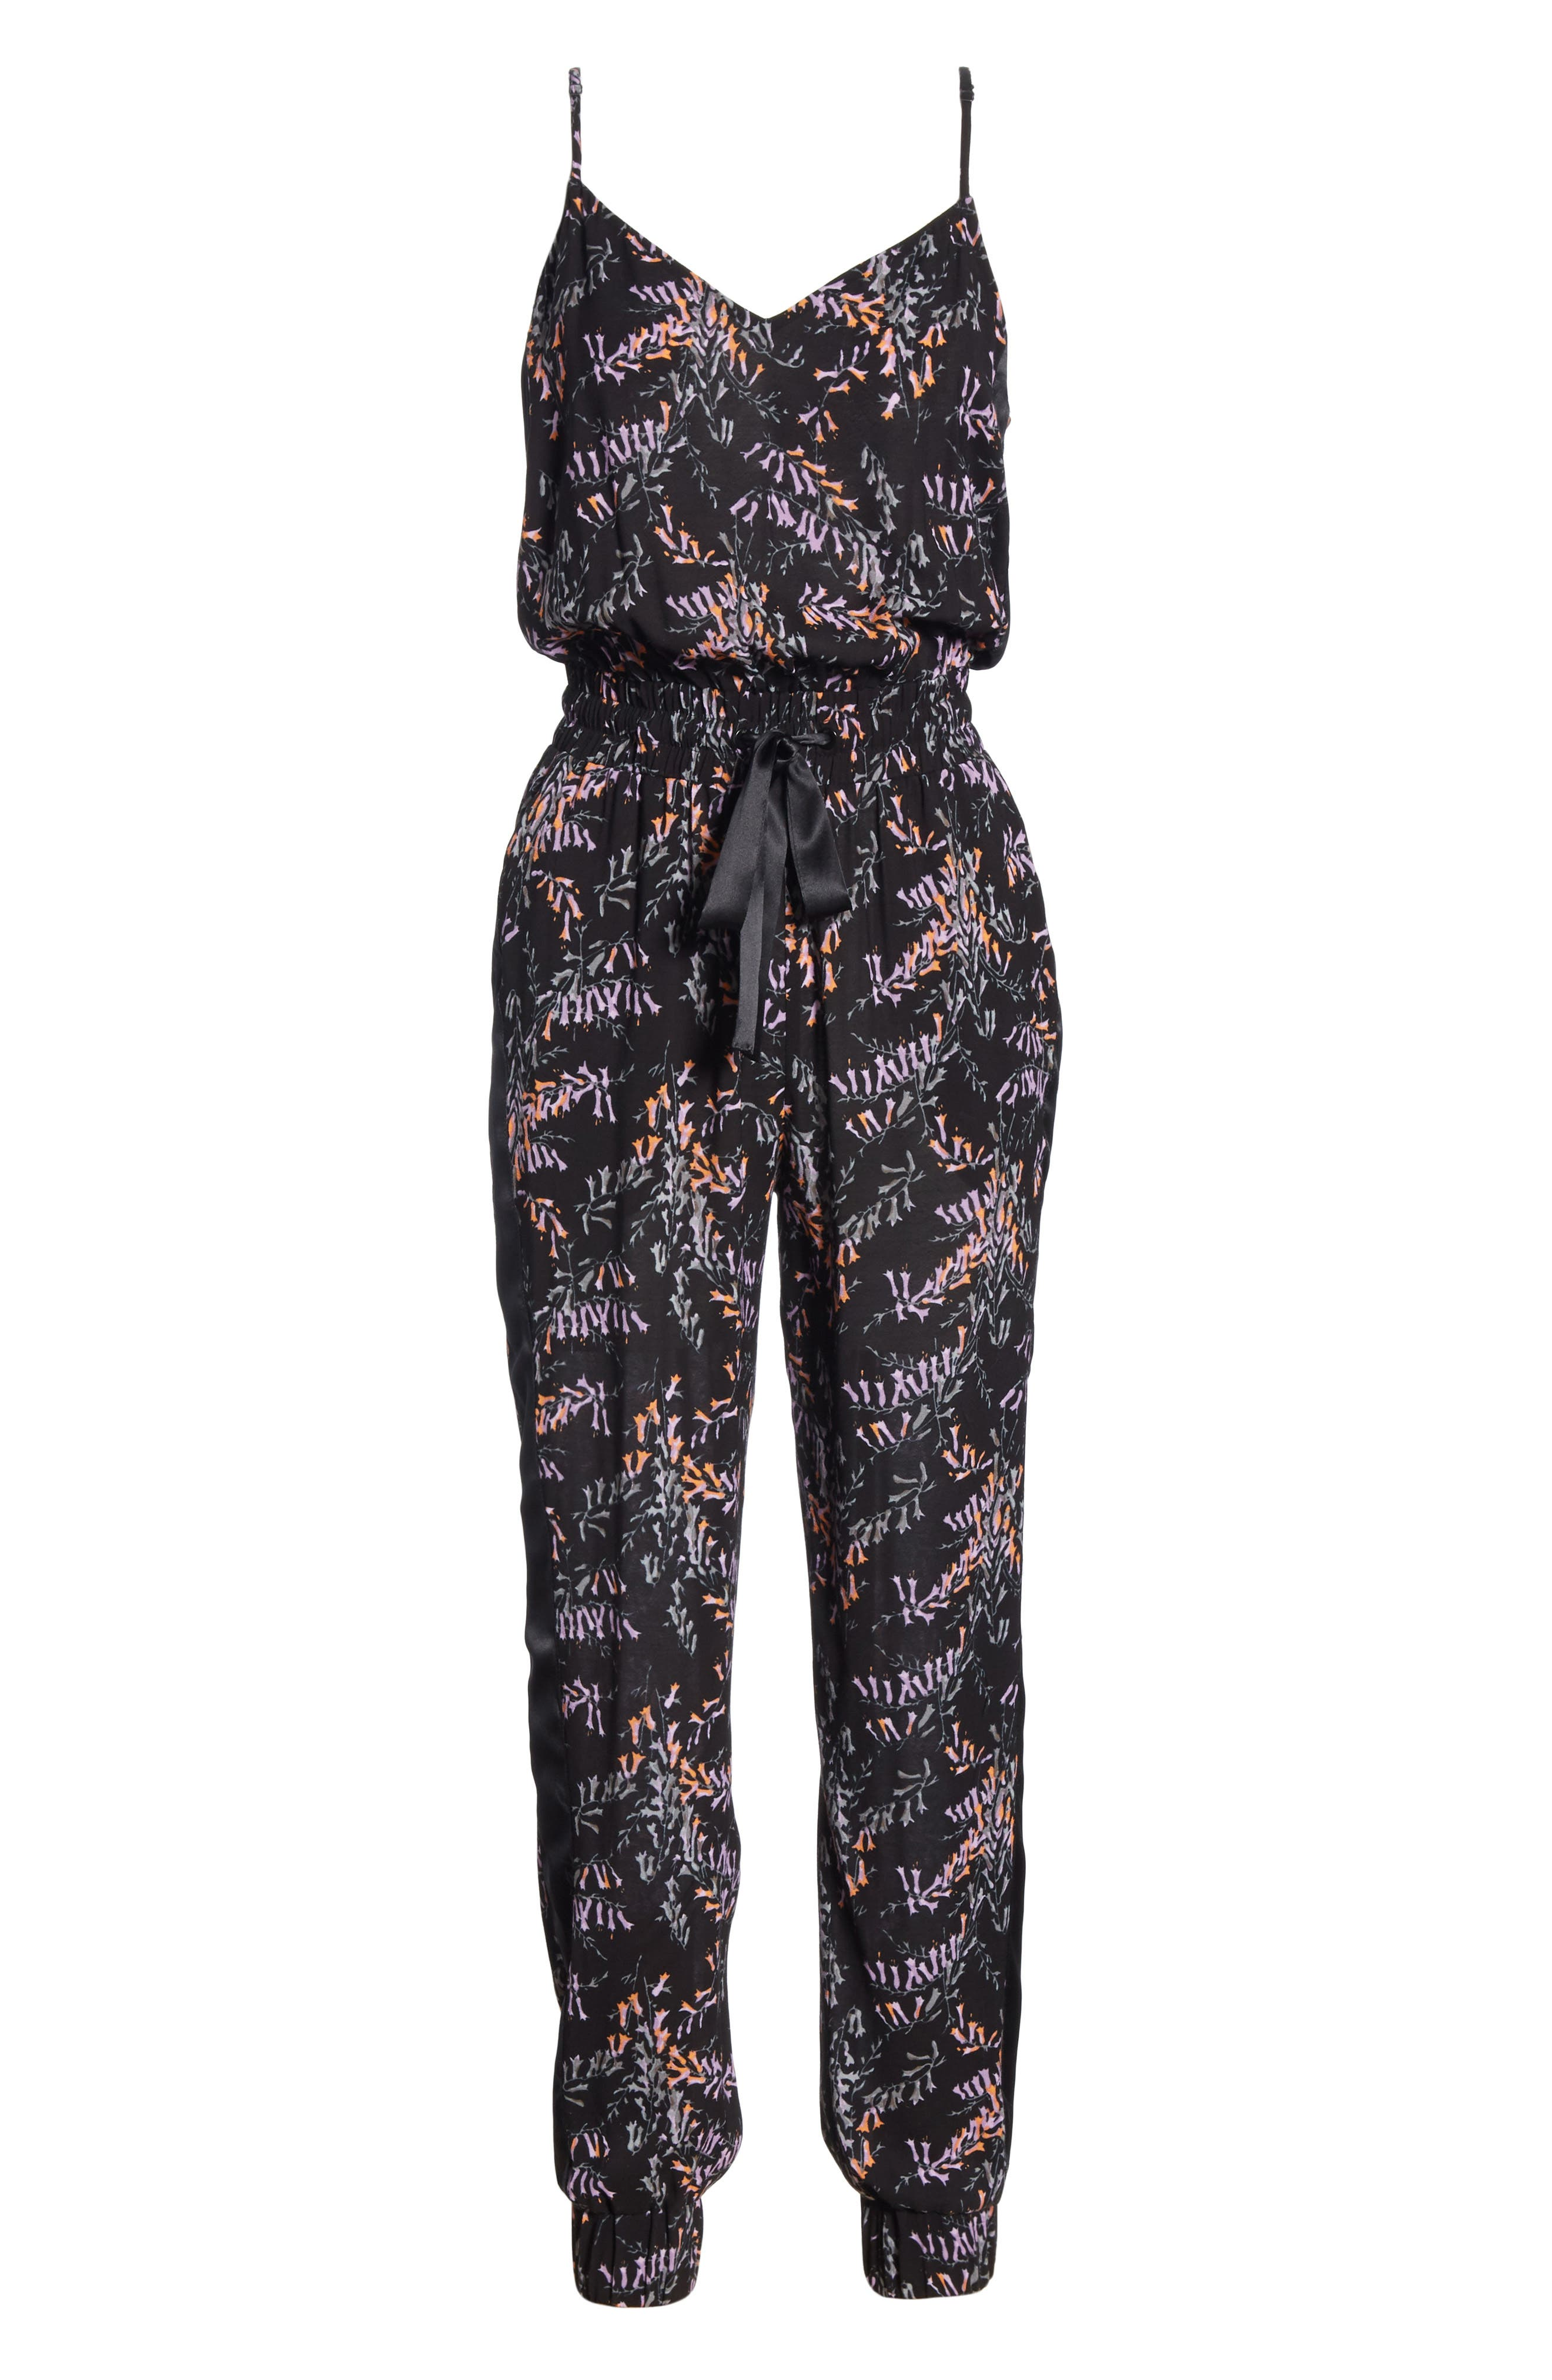 CINQ À SEPT,                             Amia Snapdragon Print Silk Jumpsuit,                             Alternate thumbnail 6, color,                             BLACK MULTI